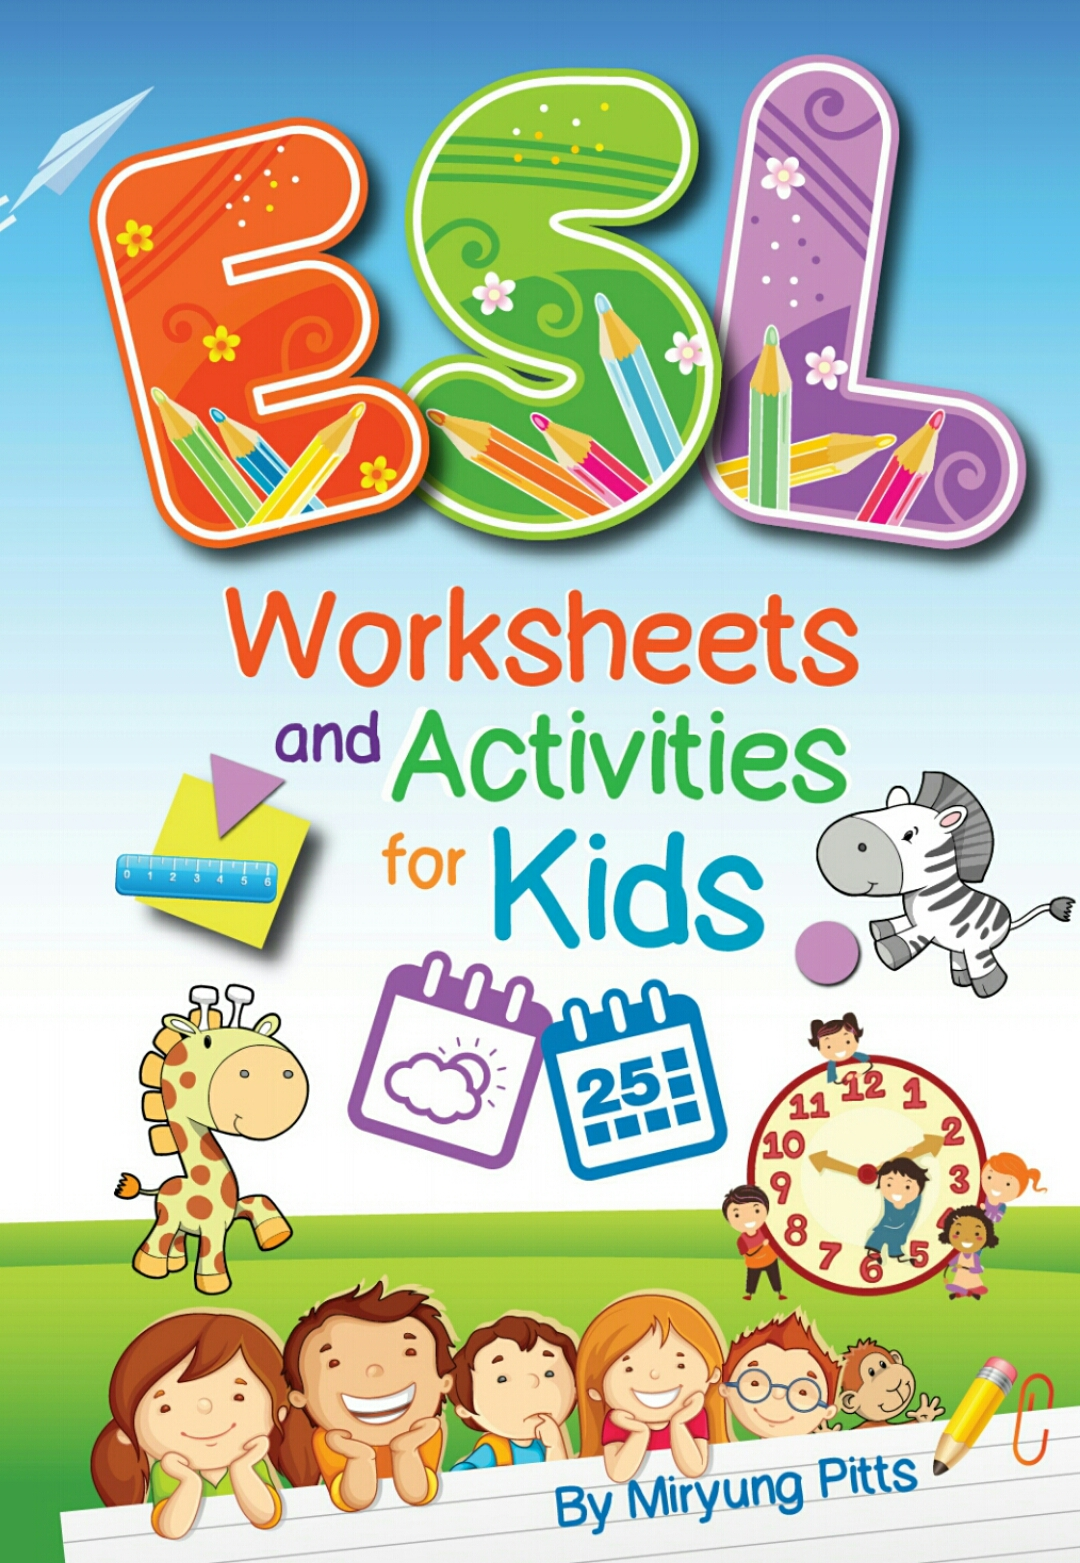 Download It All Esl Worksheets And Activities For Kids In